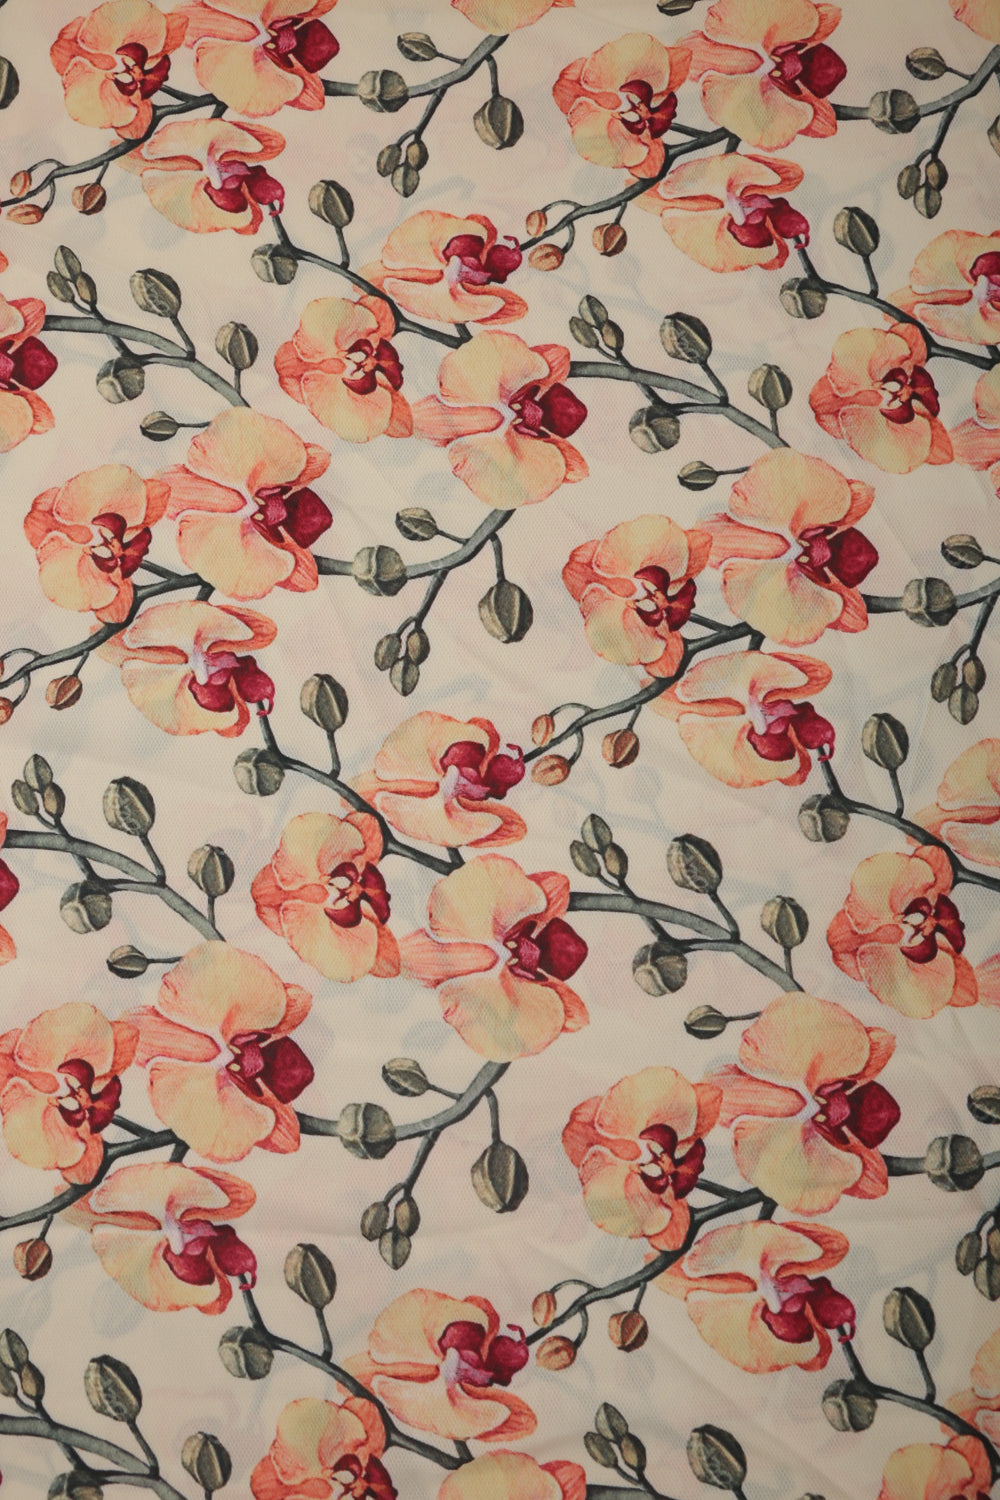 Floral Printed Crepe Fabric - GleamBerry